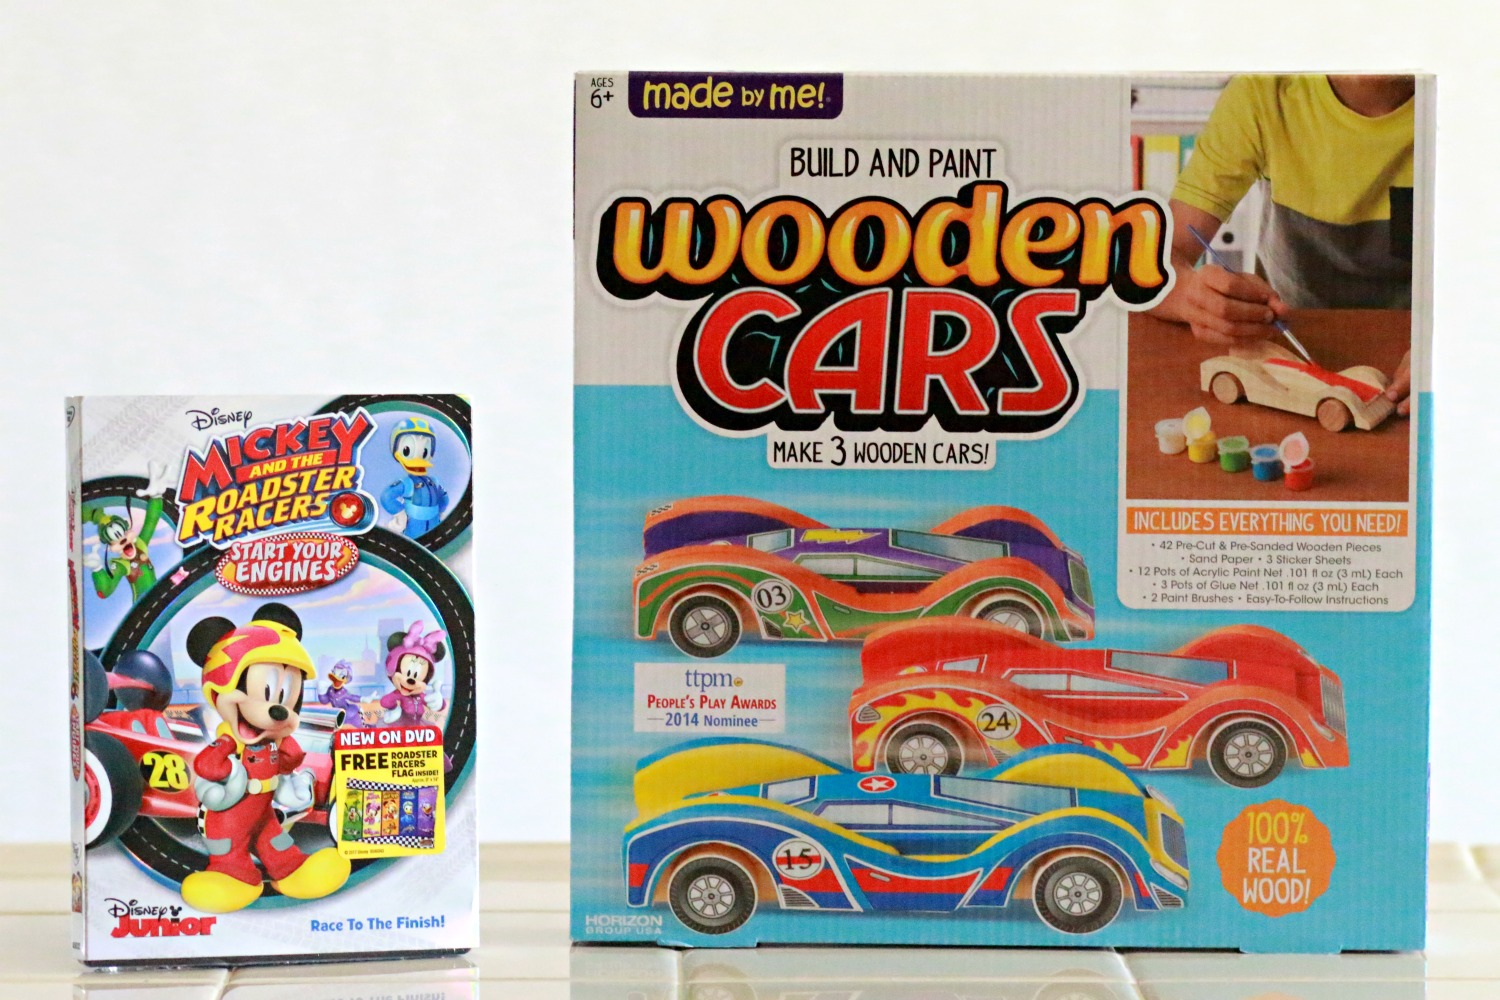 Mickey-and-the-Roadster-Racers-Start-Your Engines-activity-giveaway